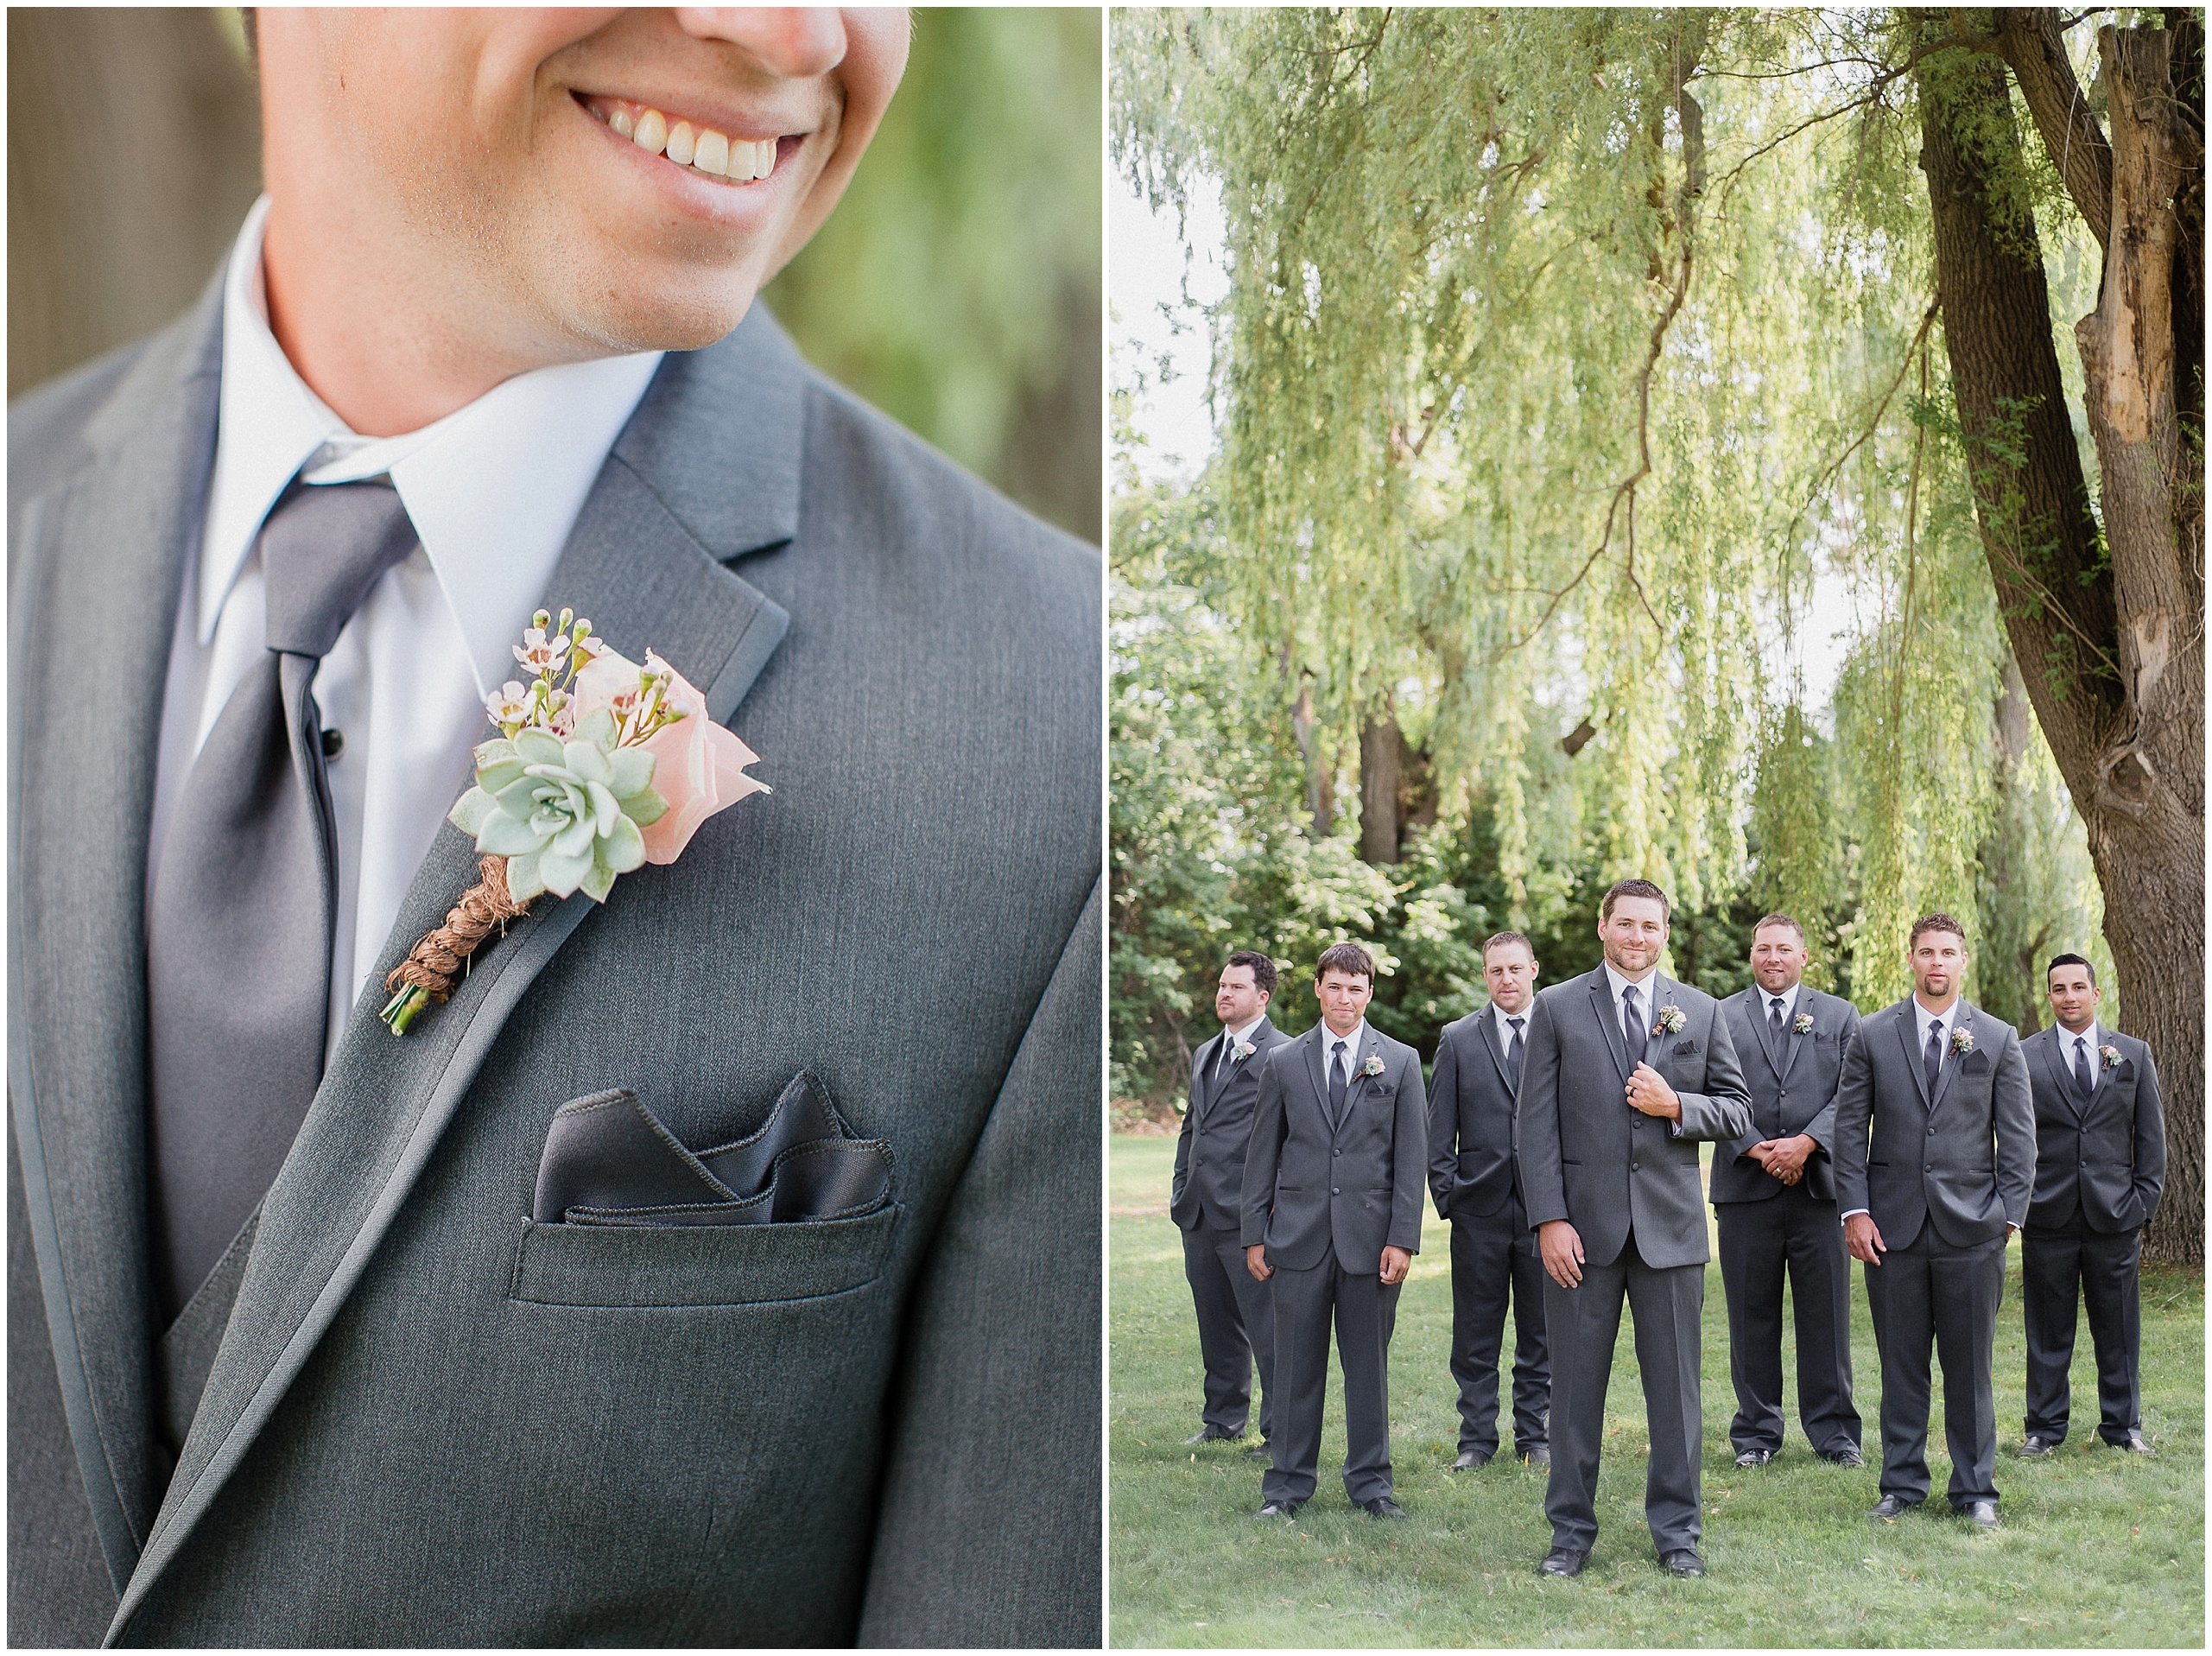 Groomsmen boutonniere with twine and succulents. Photographed by Jenn Kavanagh Photography